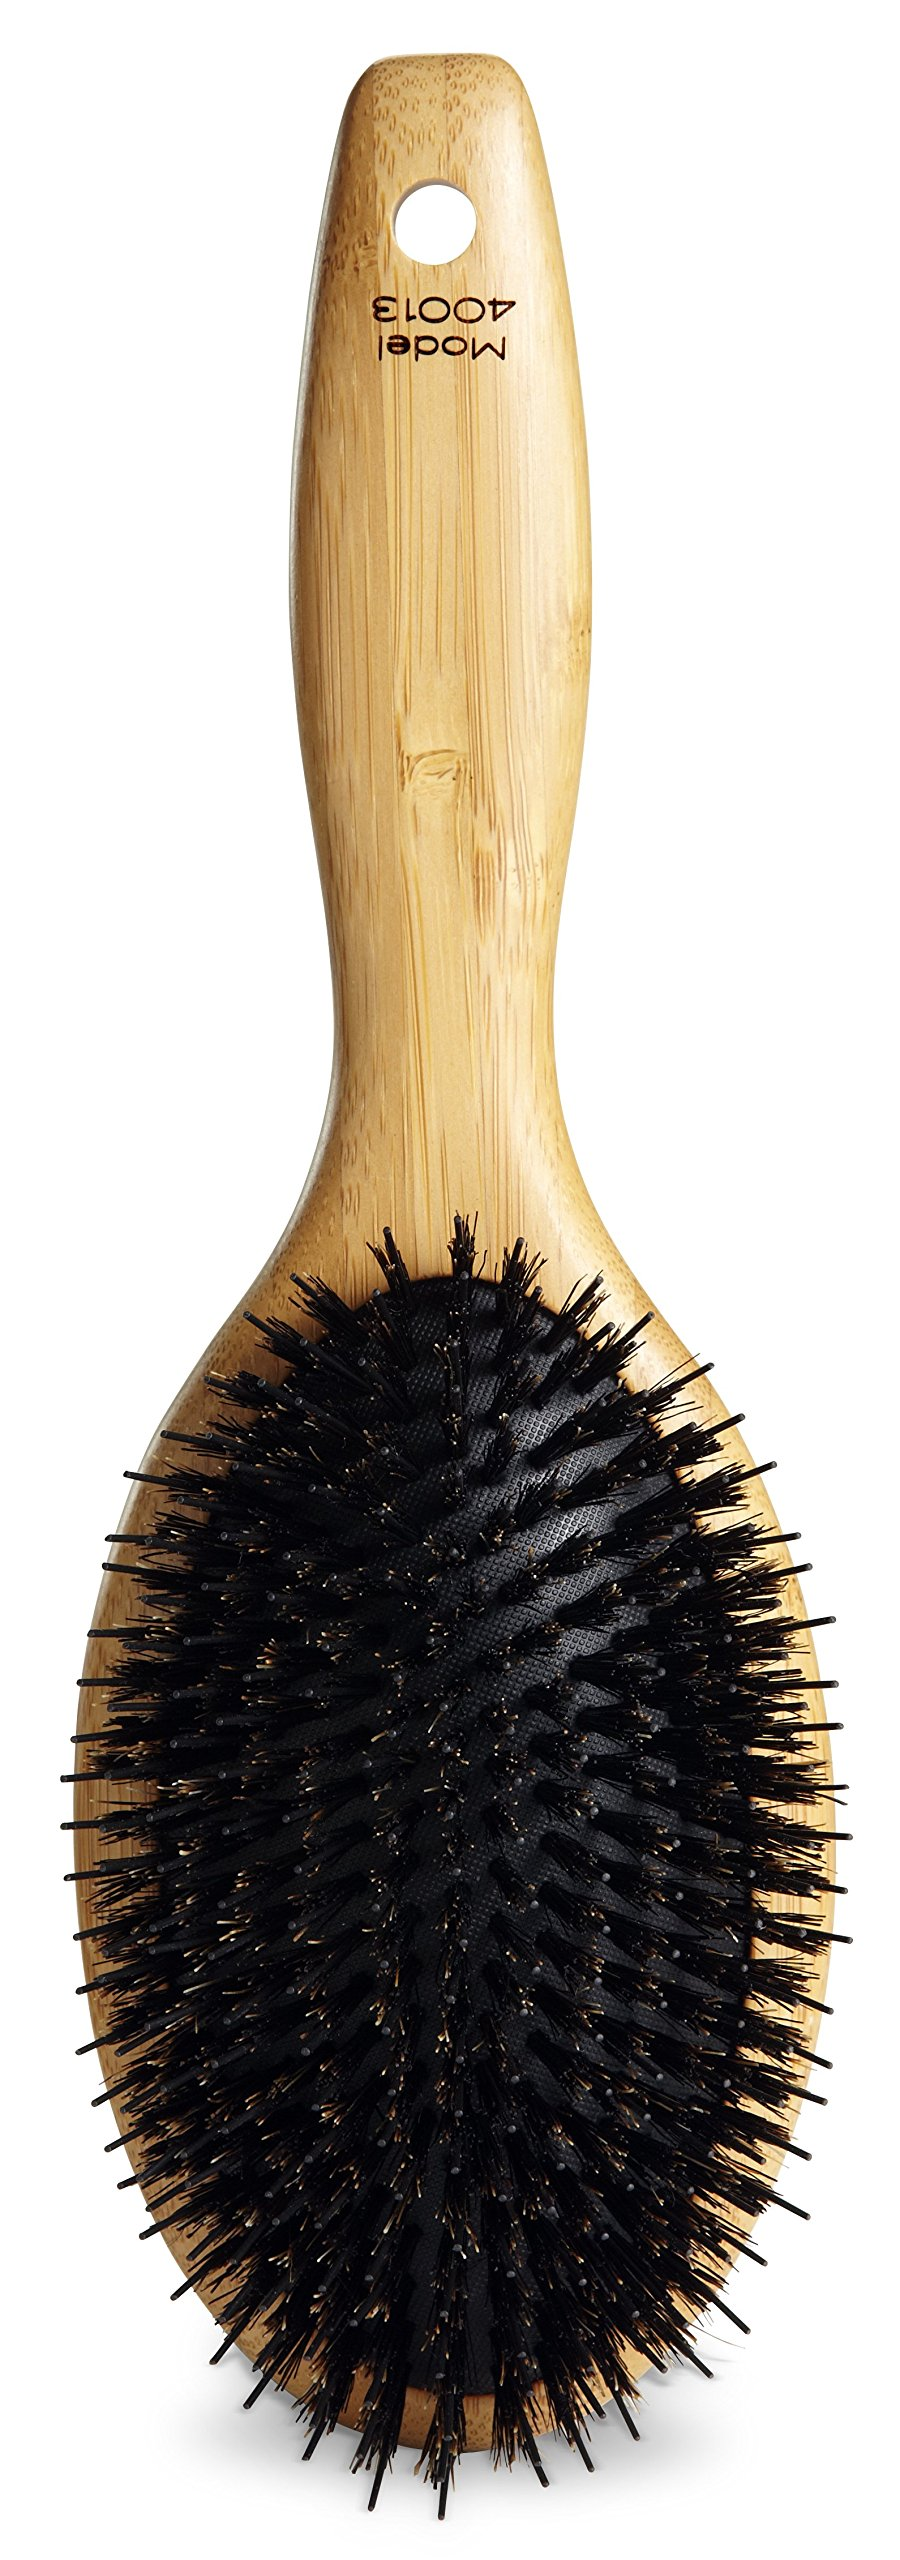 Sam Villa Signature Series Bristle & Nylon Styling Brush